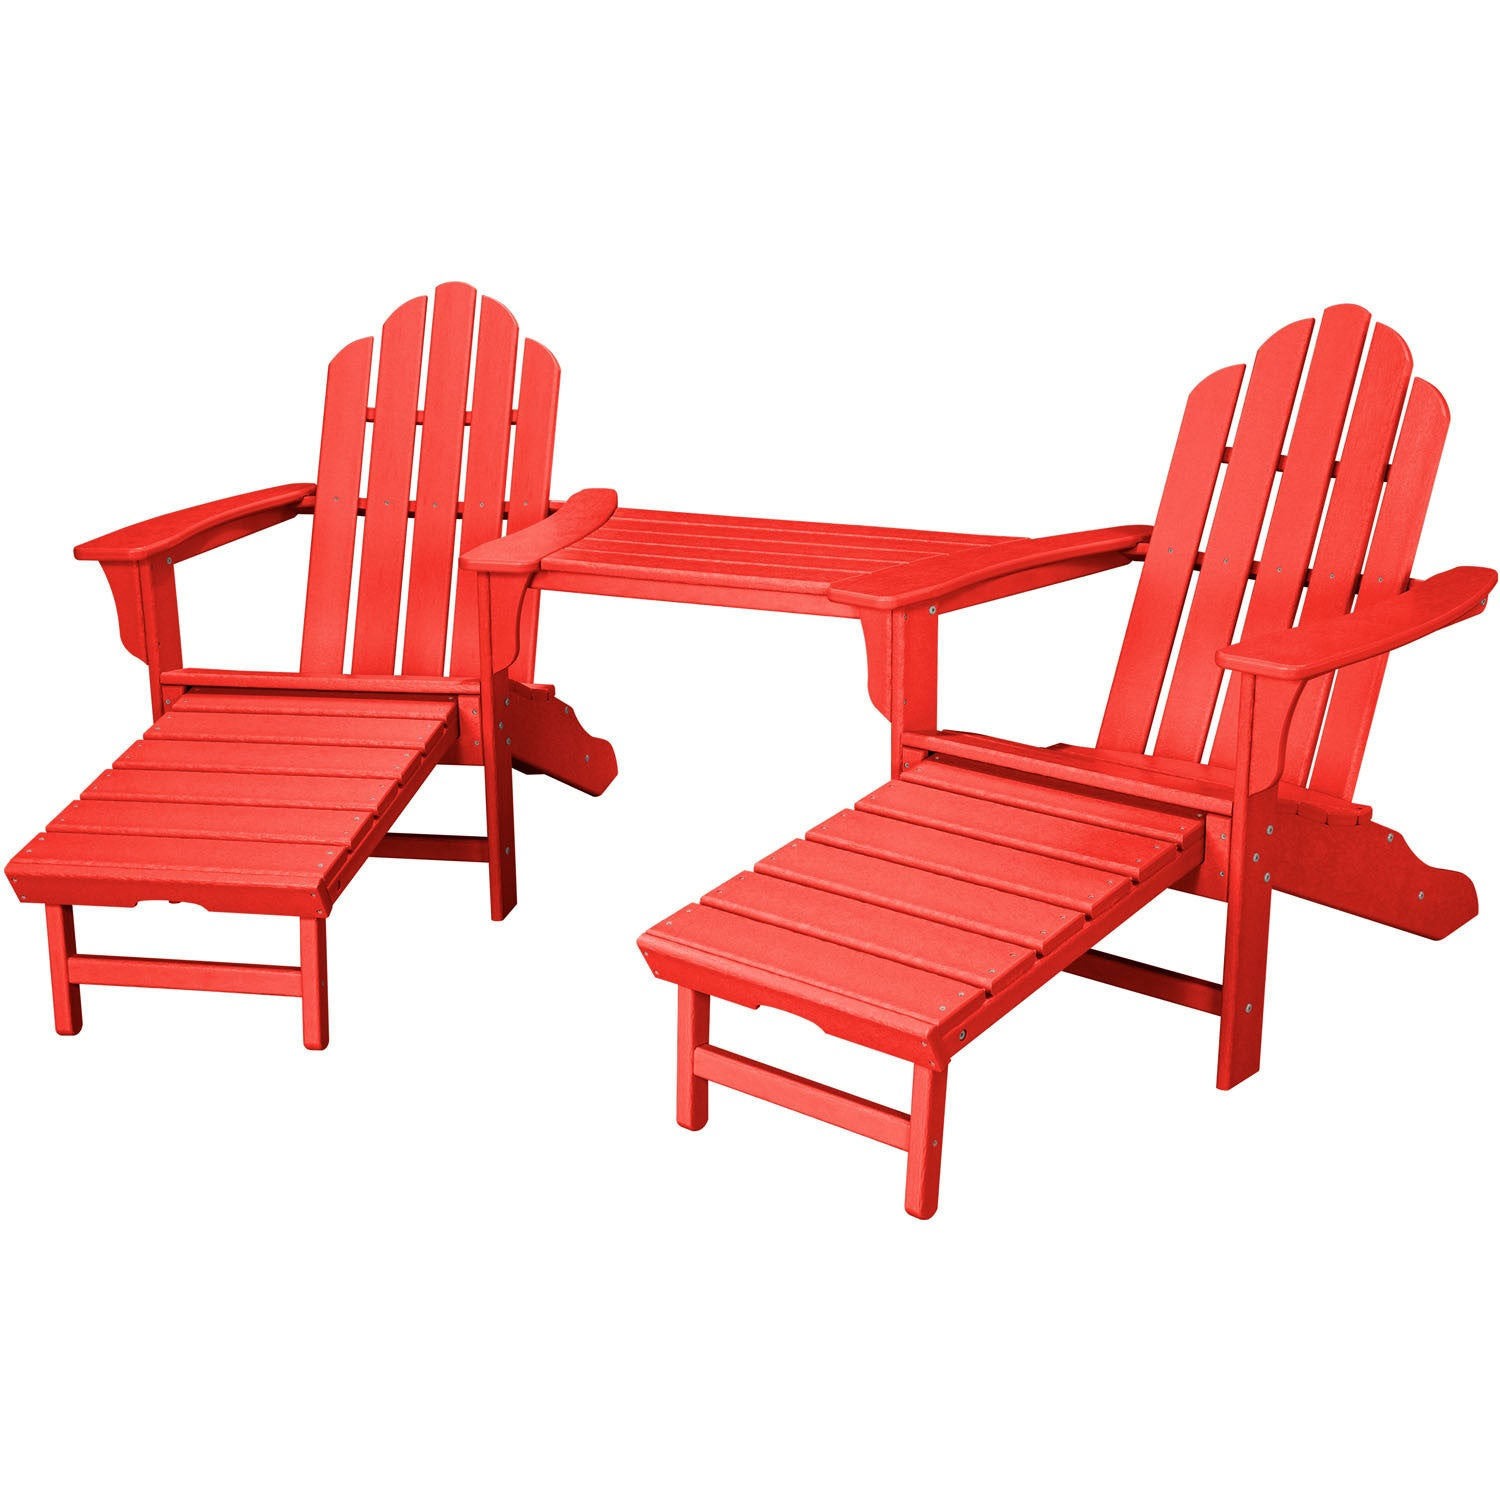 Hanover All Weather Rio 3pc Tete A Tete: 2 Adirondack Chair W/ Ottoman,  Tete A Tete Table   RIO3PC OTT SR   Sunset Red